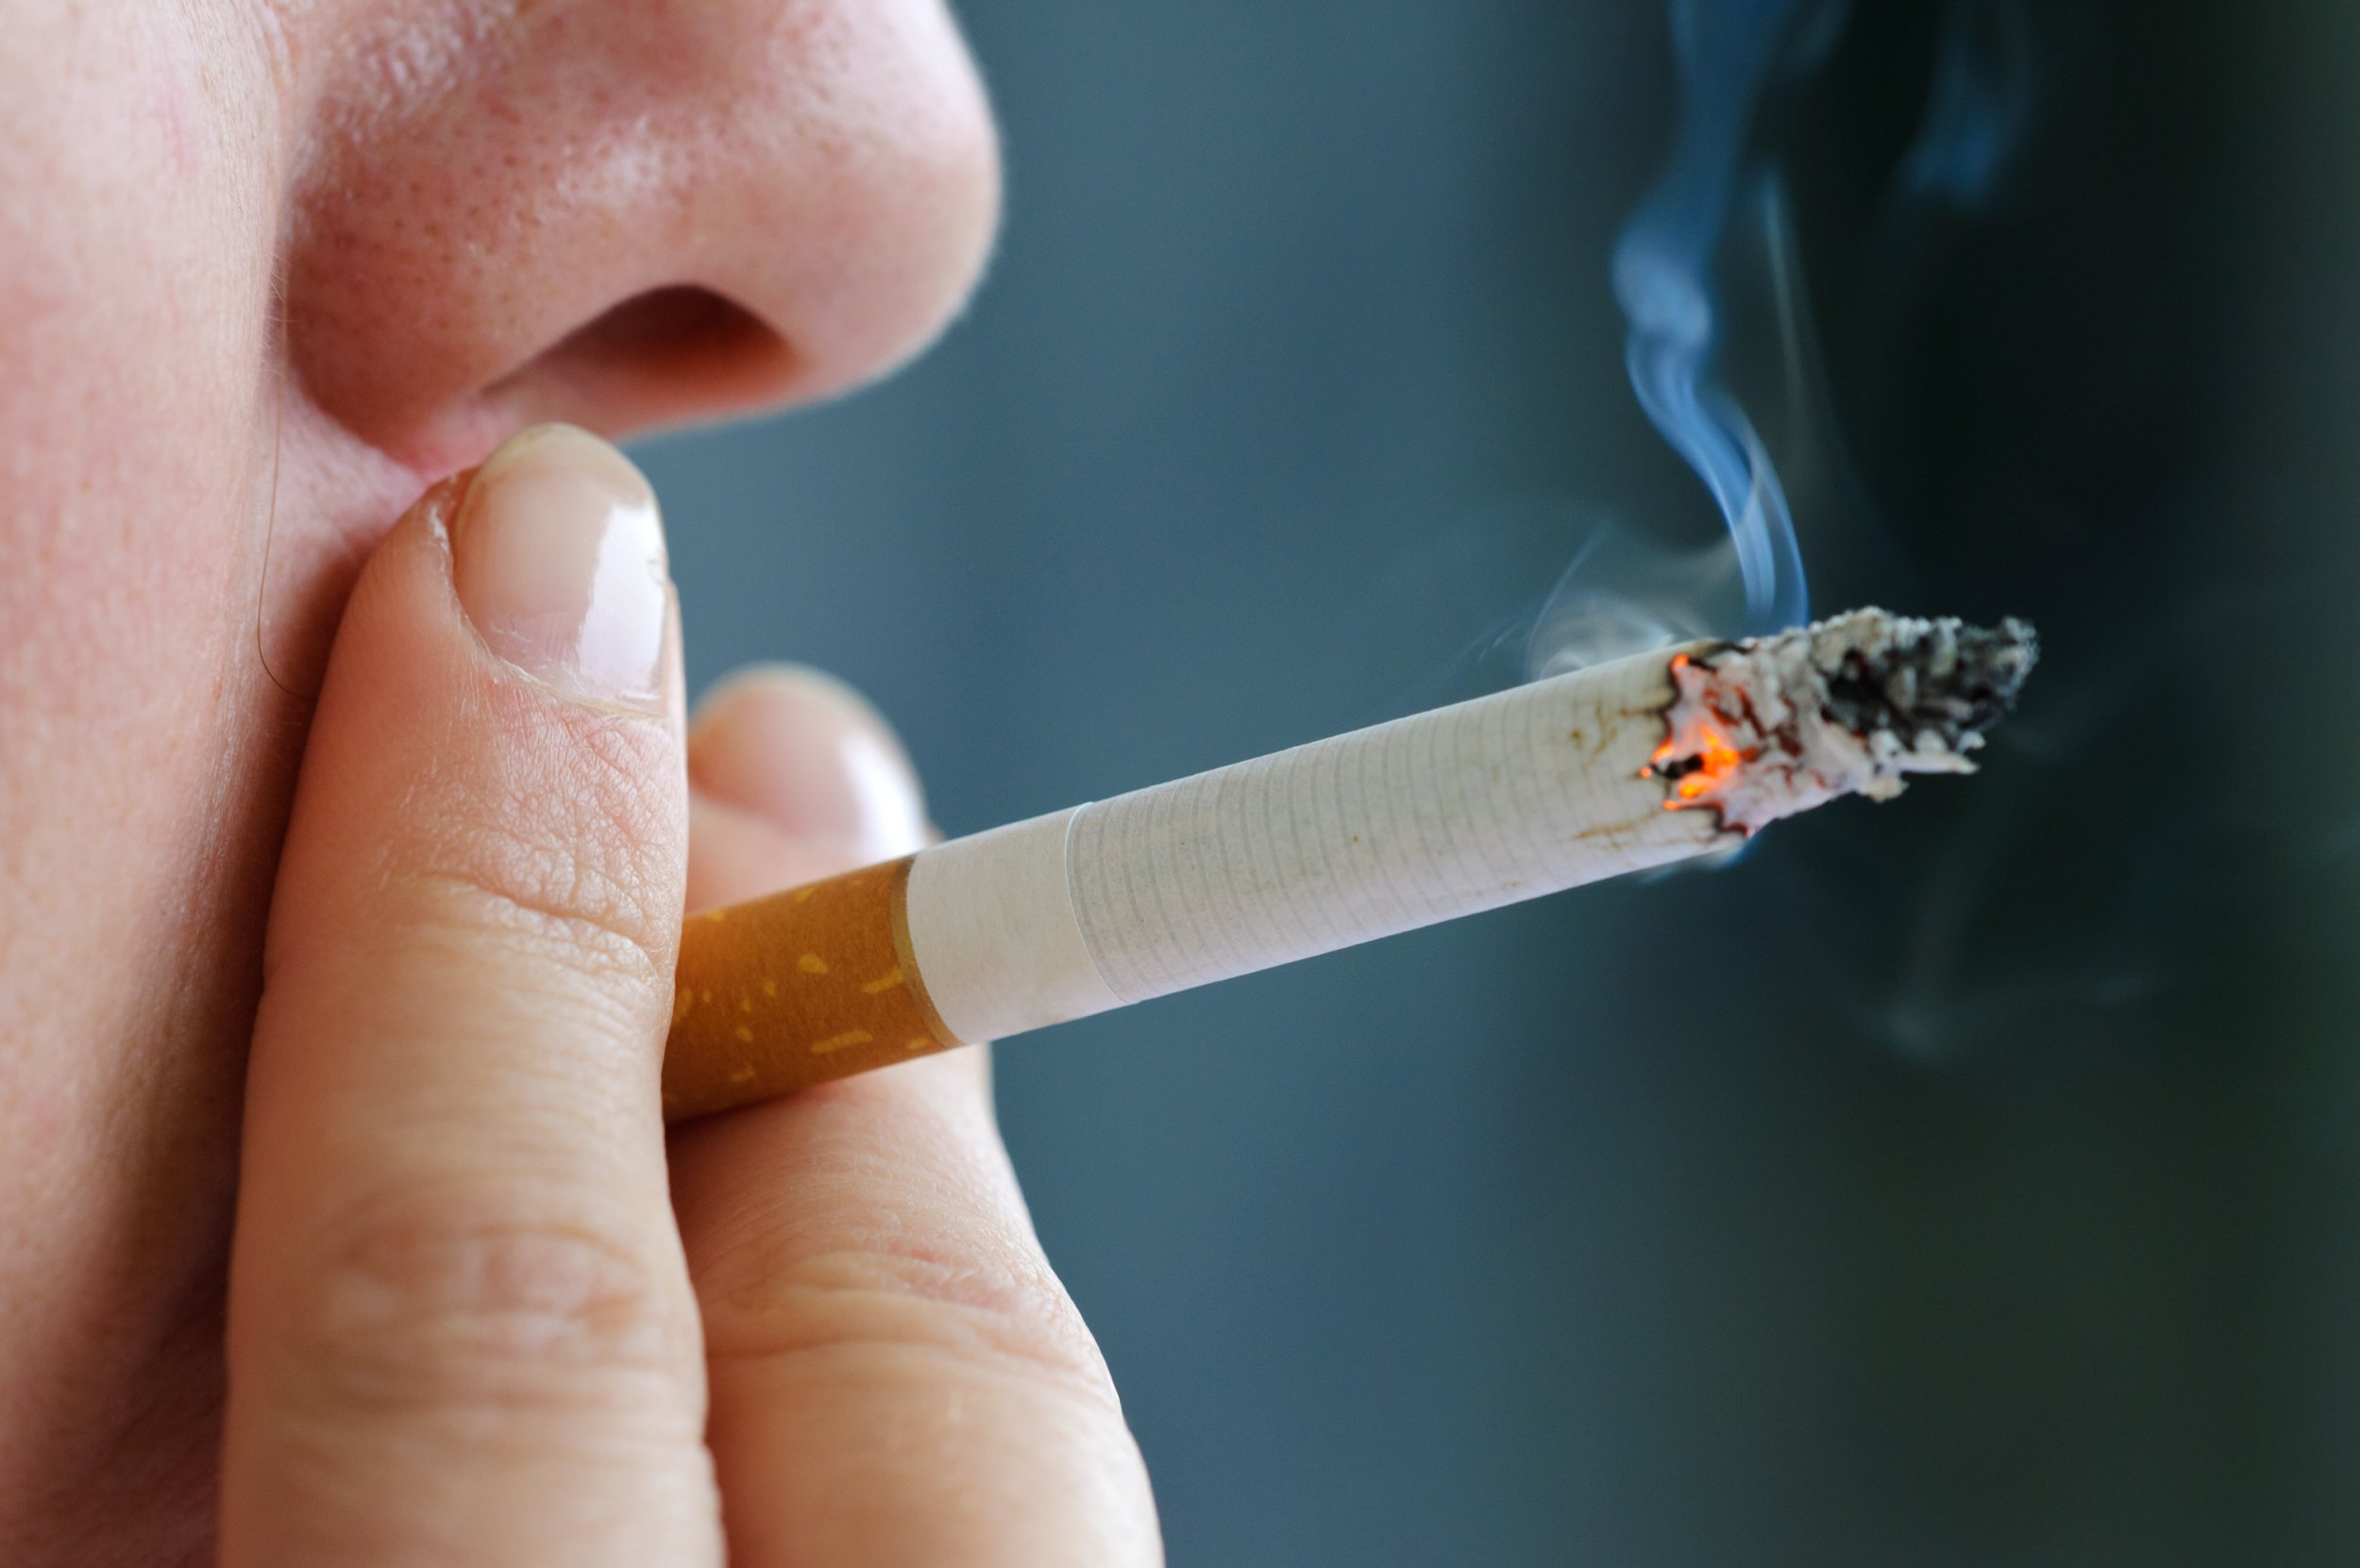 Scientists reveal when and where England's last cigarette will be smoked